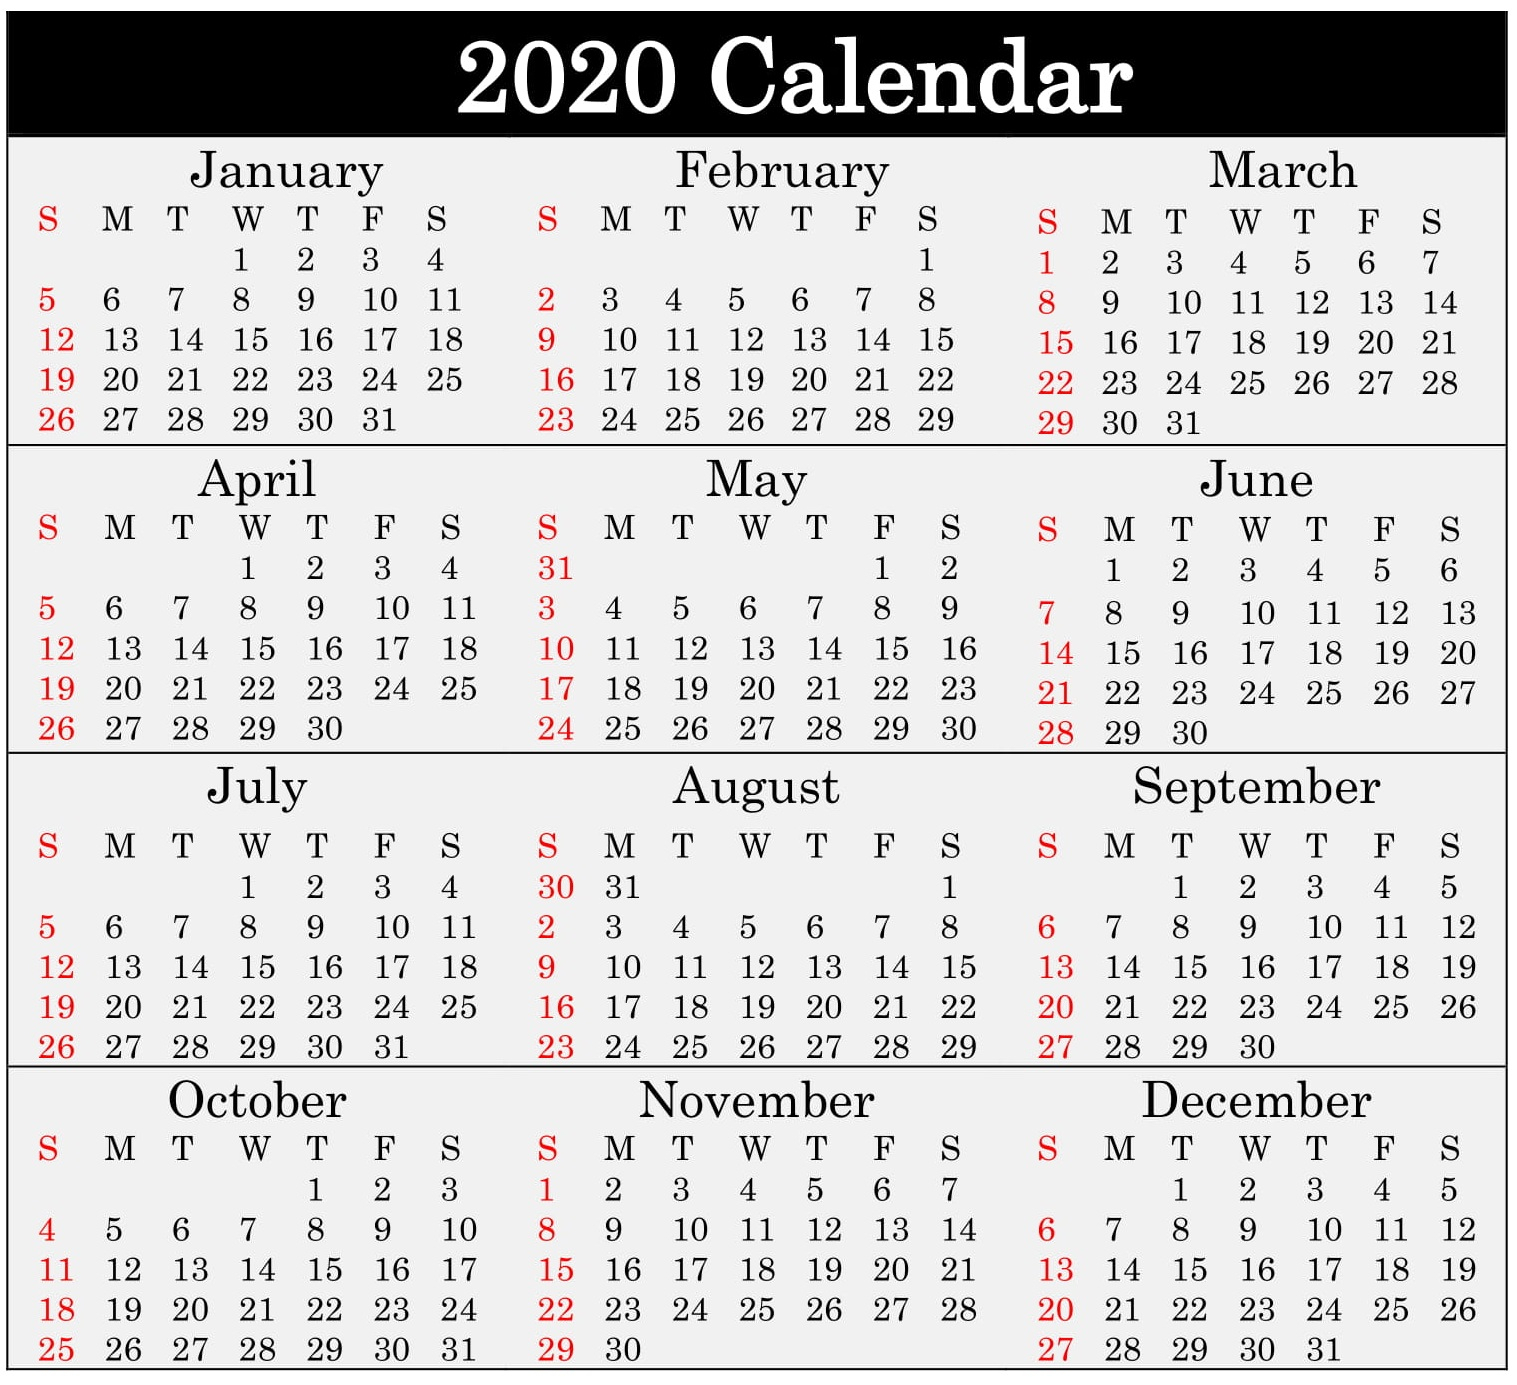 Printable 2020 Calendar Word Document  Latest Printable throughout Julian Date Calender 2020